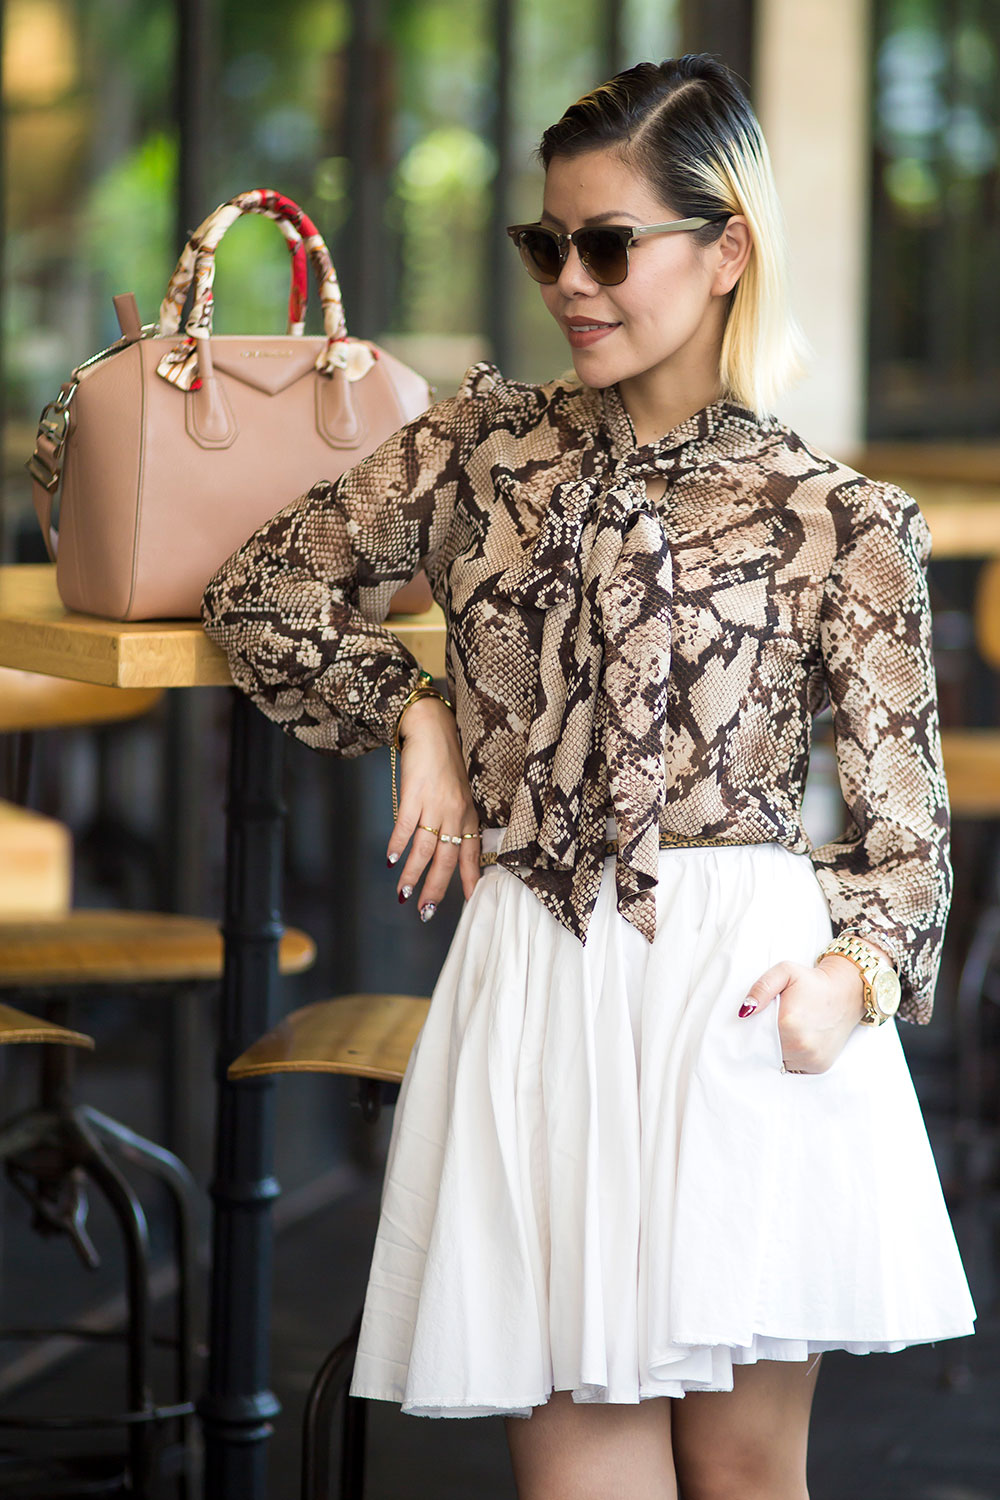 Crystal Phuong- Fashion Blogger- Snake skin blouse and white skirt